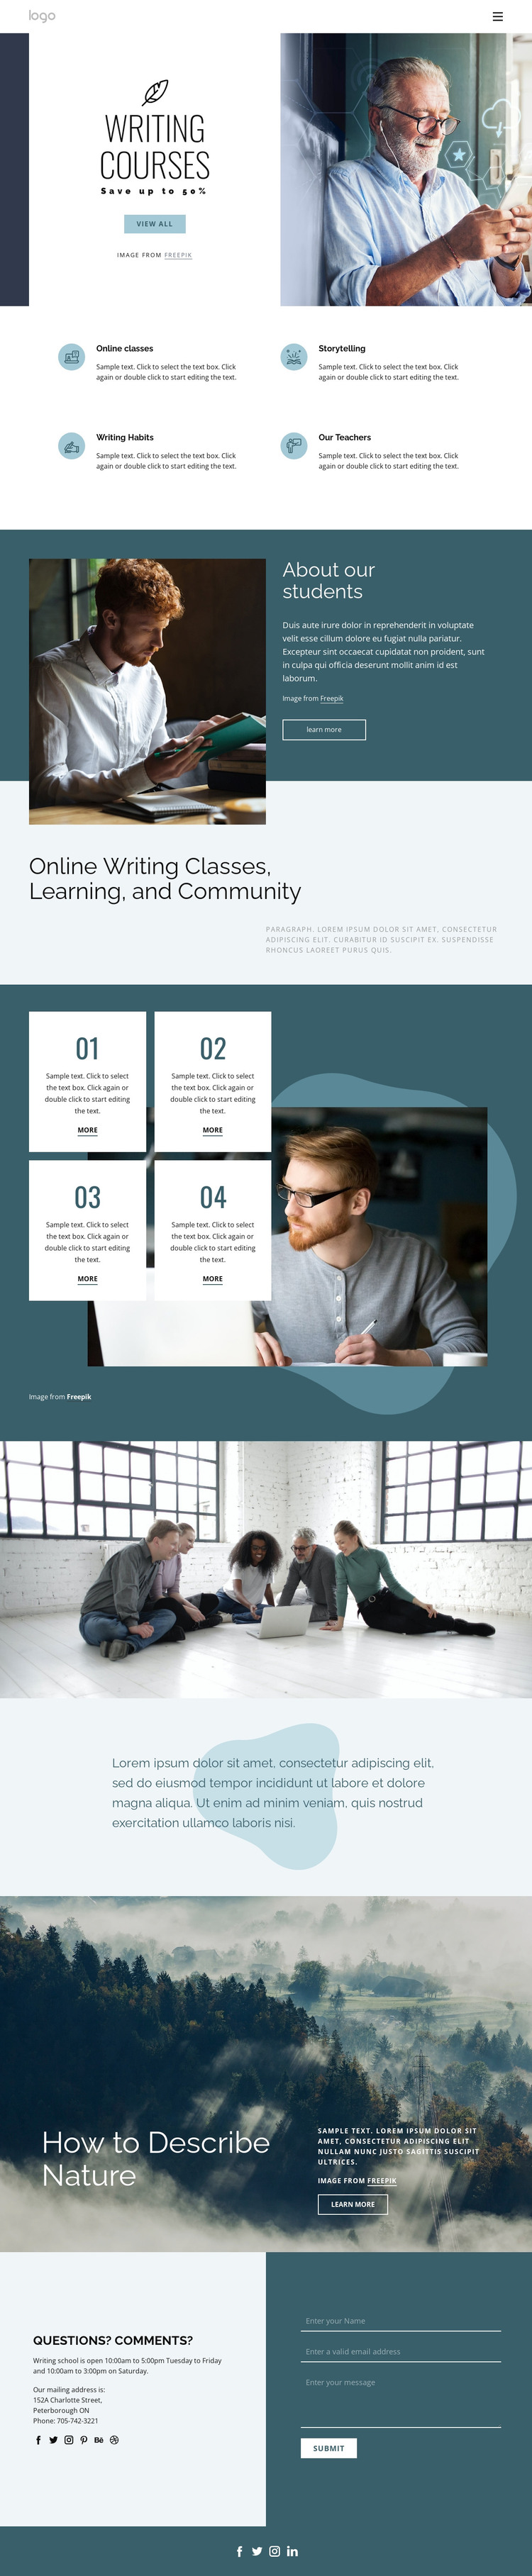 Creative writing courses WordPress Theme